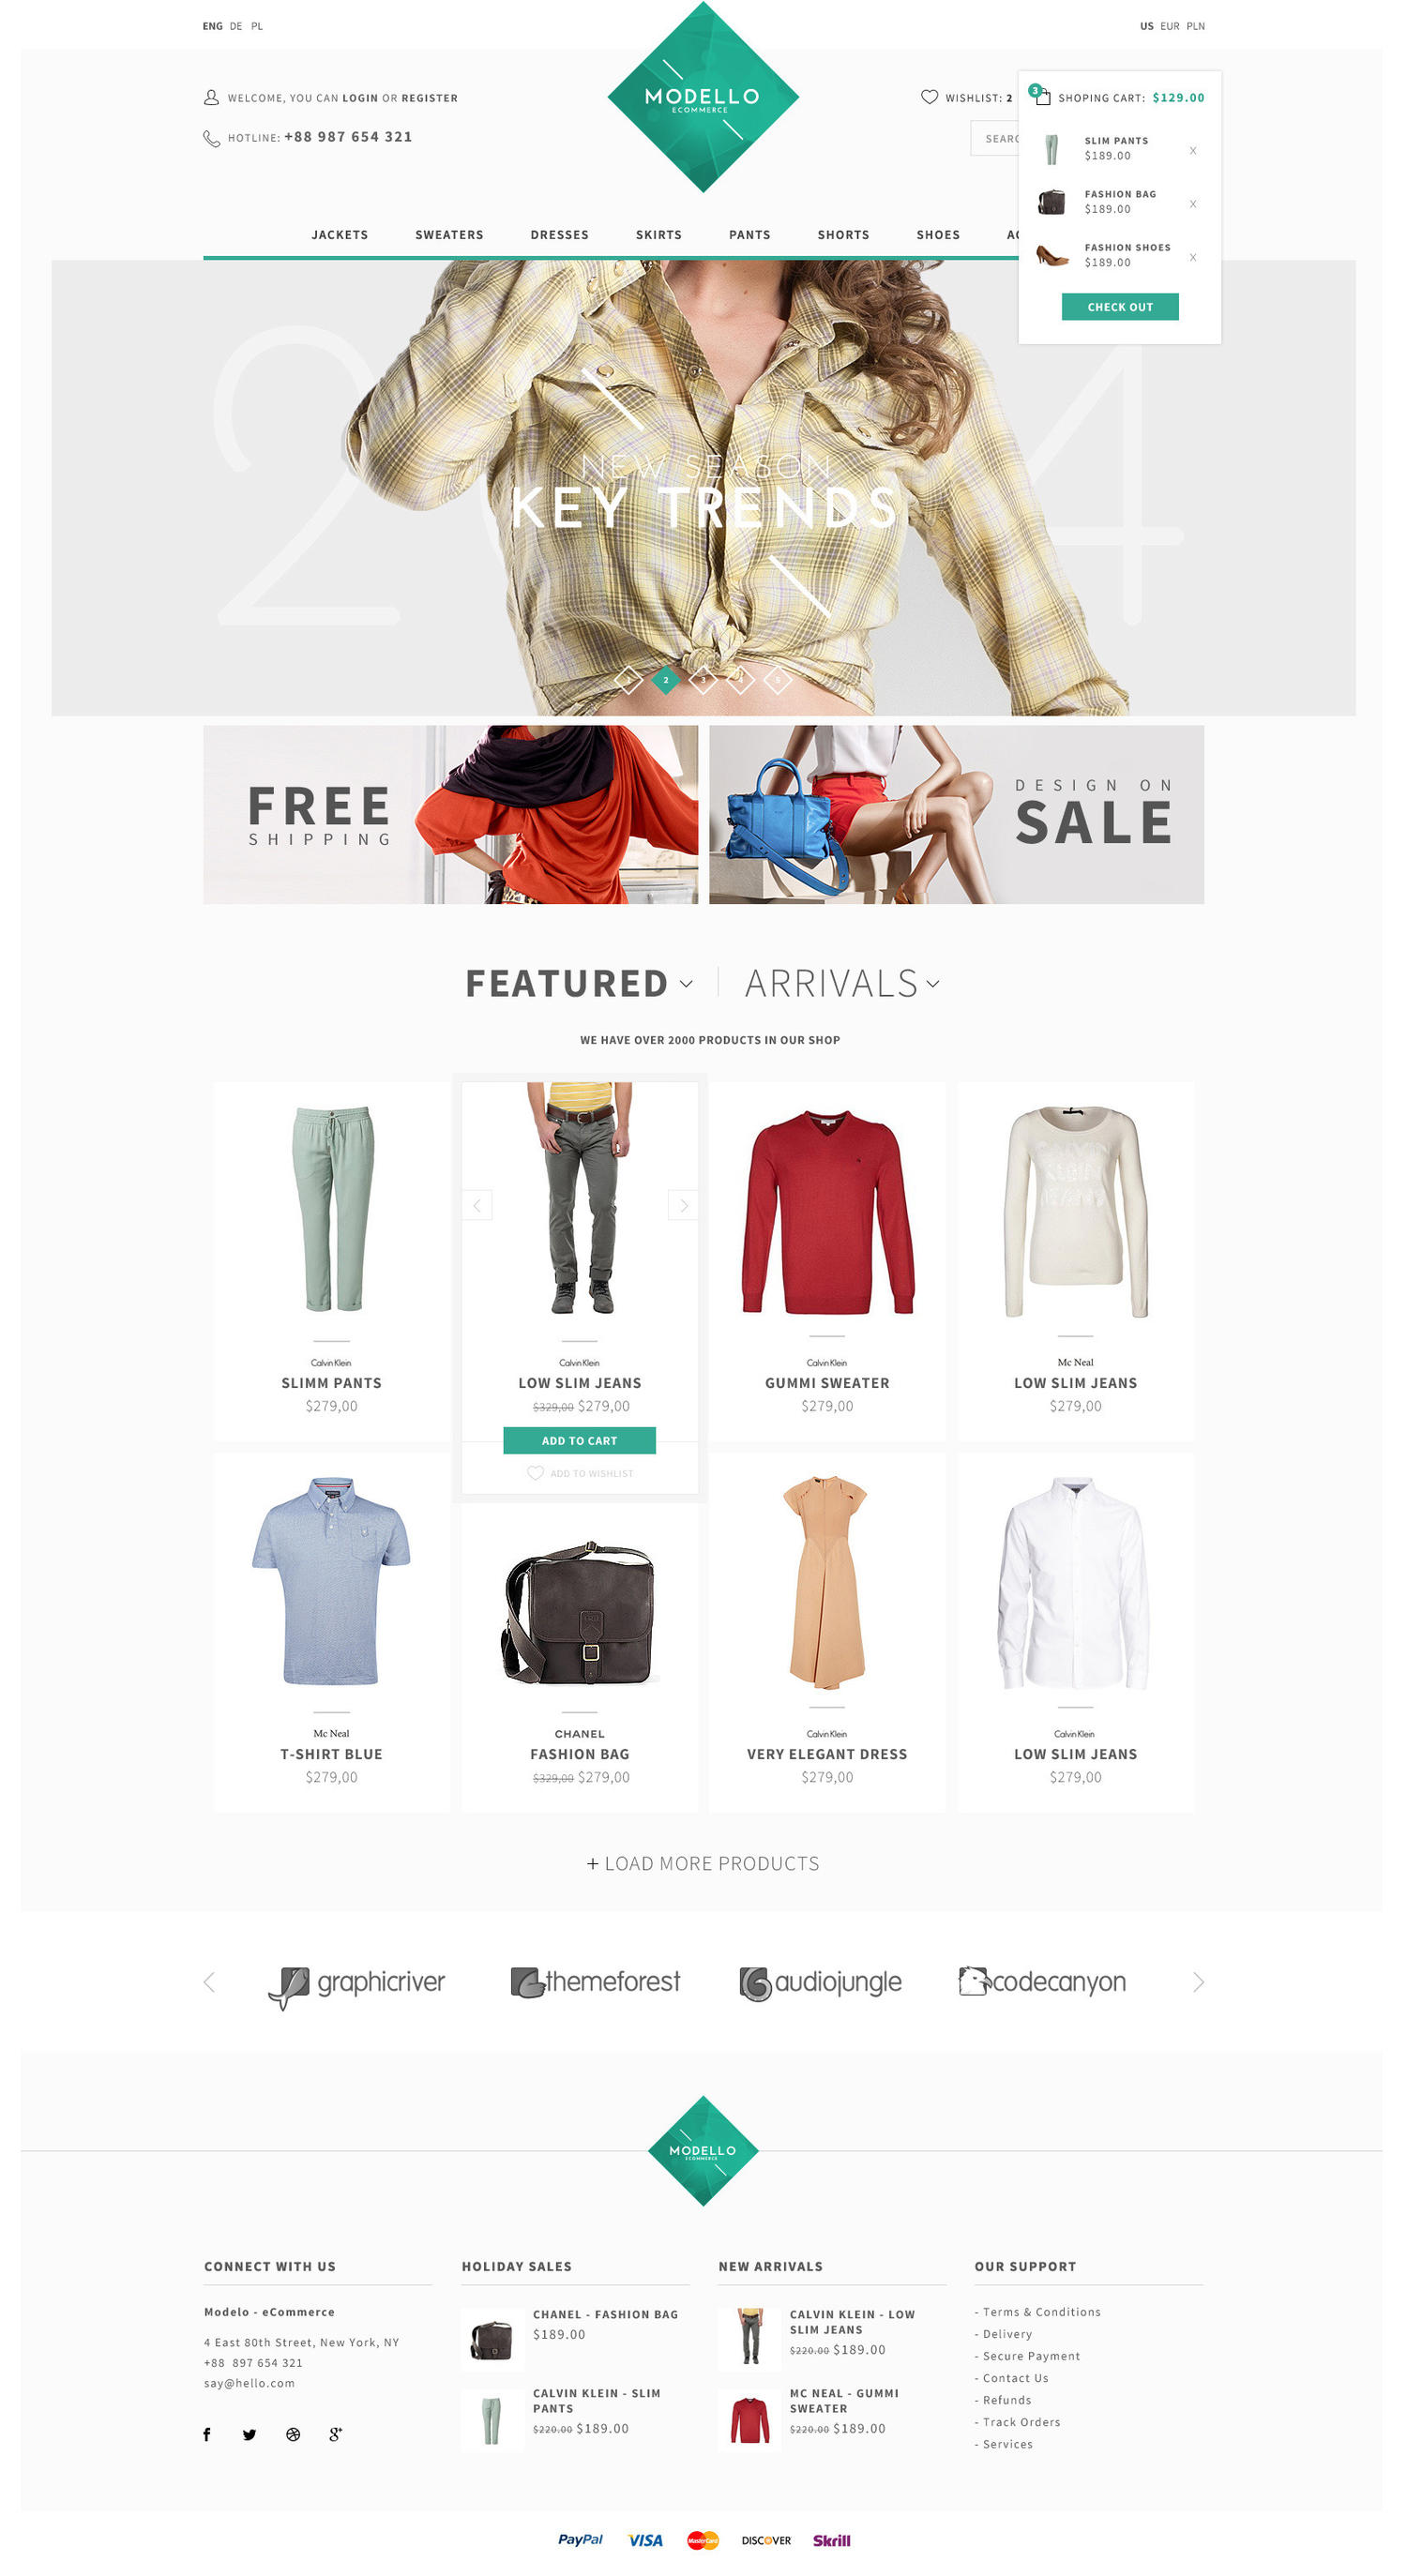 eCommerce PSD to Responsive HTML Layout (HTML5/CSS3) by LeAmino - 40359